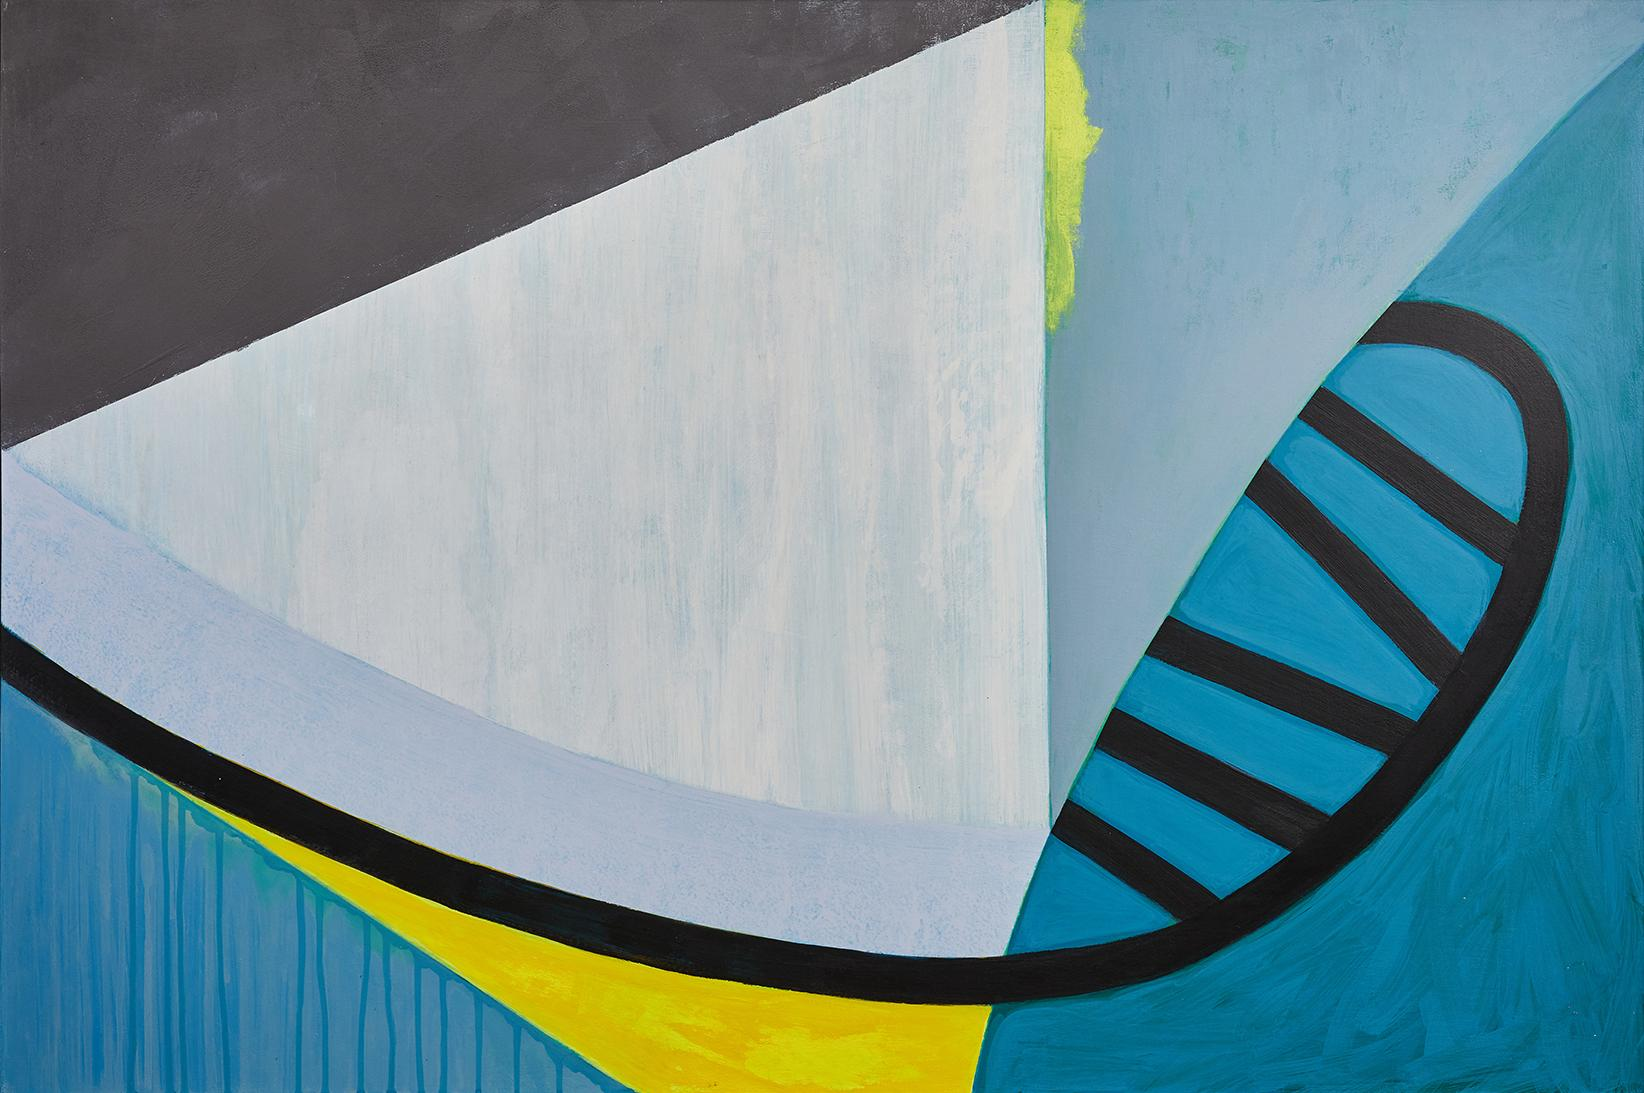 Viaduct, abstract blue and yellow painting on panel